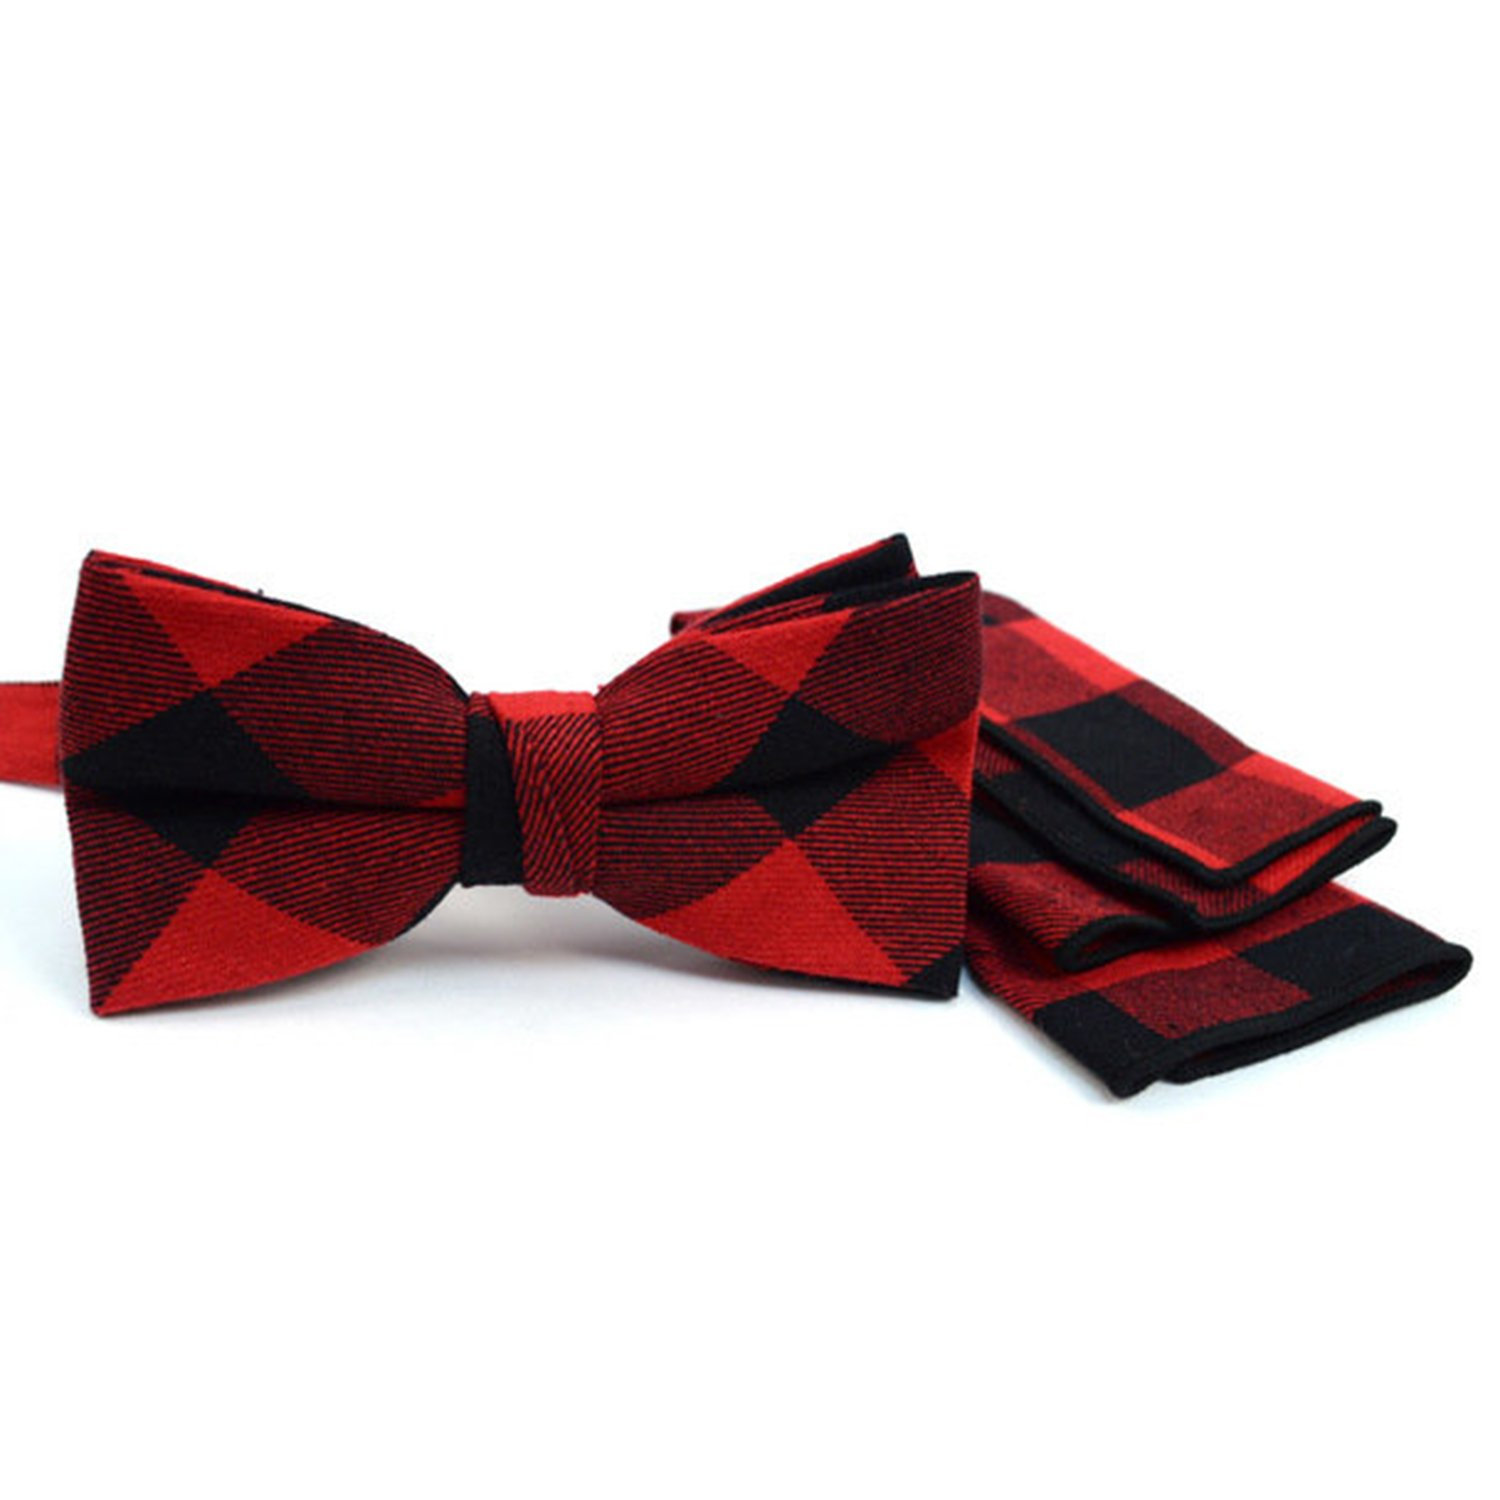 Men's Red and Black Plaid Bow Tie and Matching Pocket Square Boxed-gifts